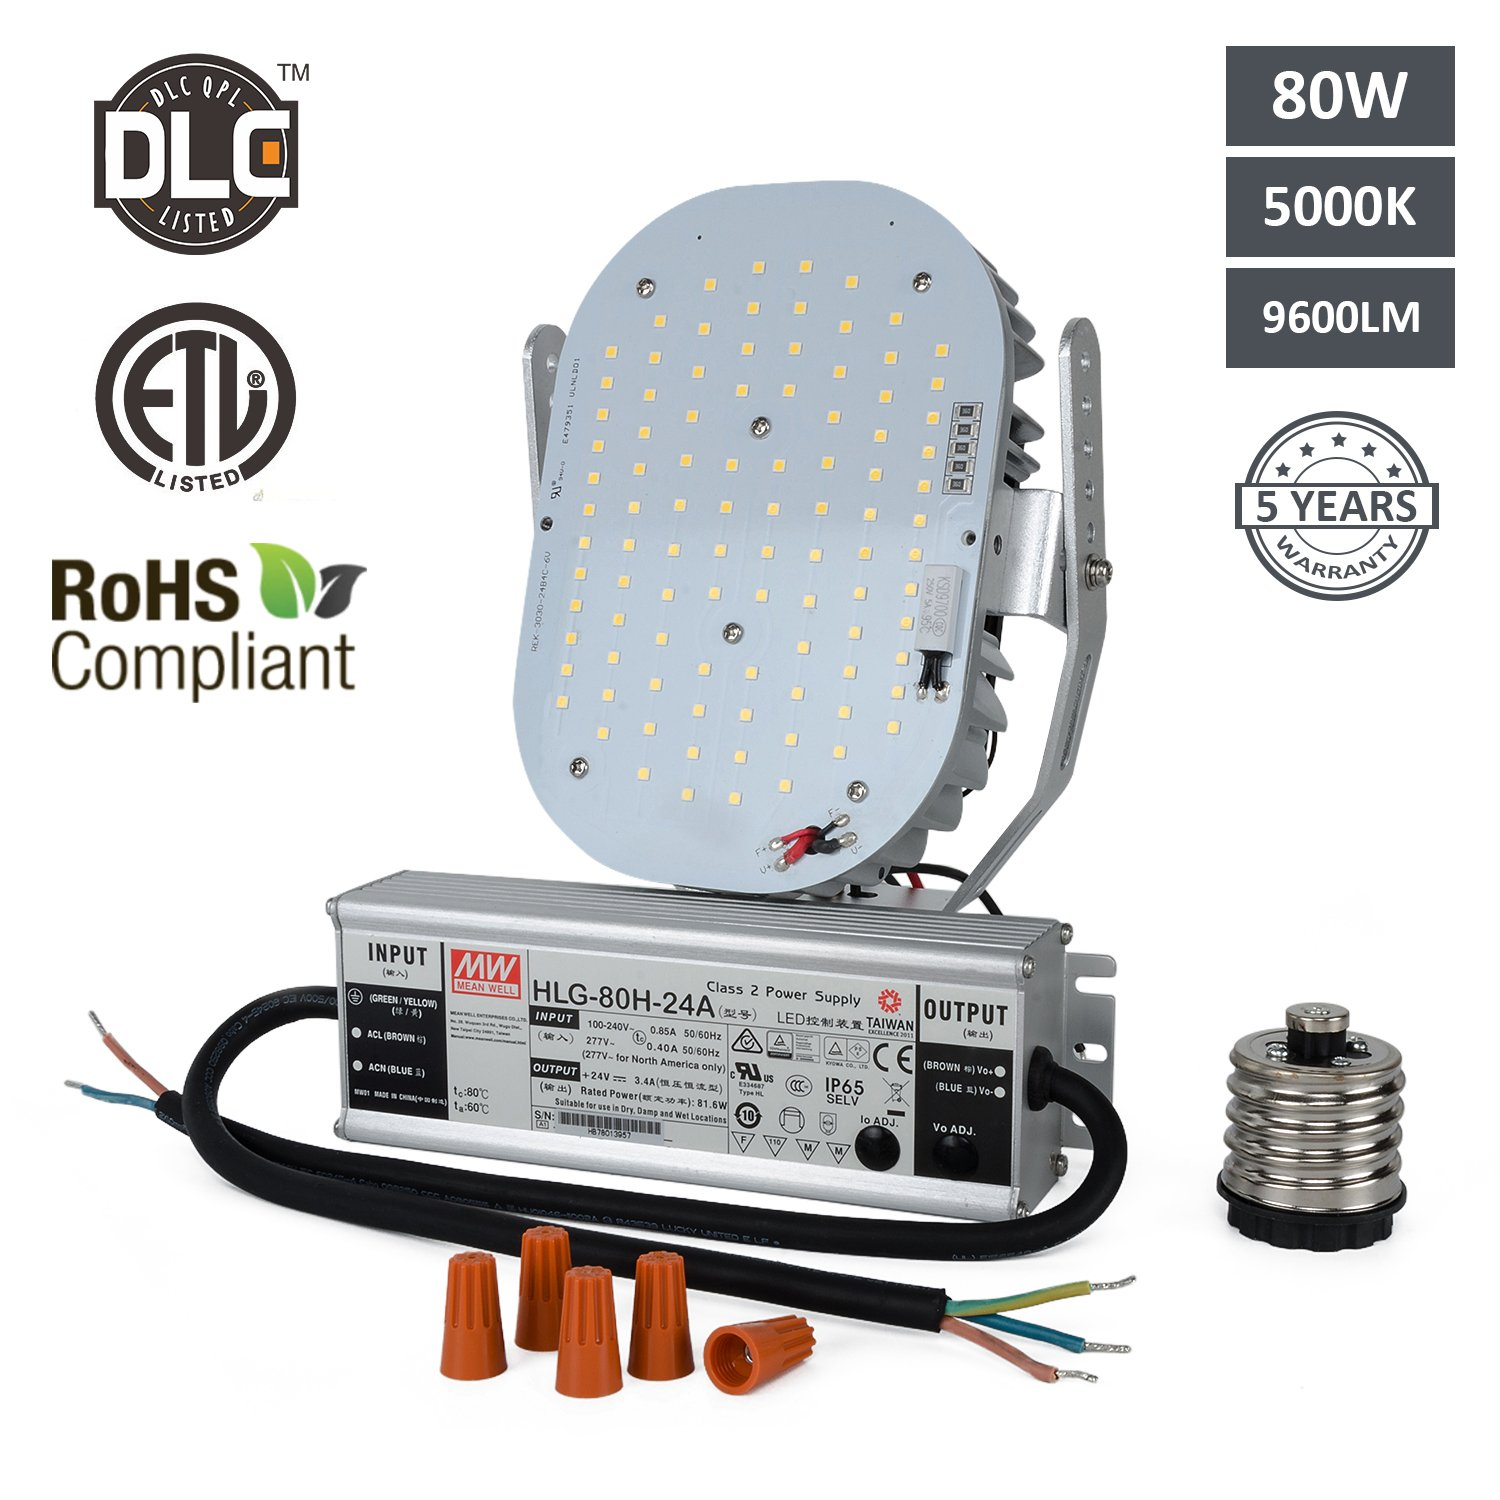 Hakkatronics 80W LED Retrofit Kit with Power Supply(UL/ETL Listed), Replaces MH/HPS/HID Bulbs, For Shoebox, Flood Lights, Wall Pack, Canopy and High Bay Fixtures 5000K White Lighting 5 Years Warranty] by Hakkatronics